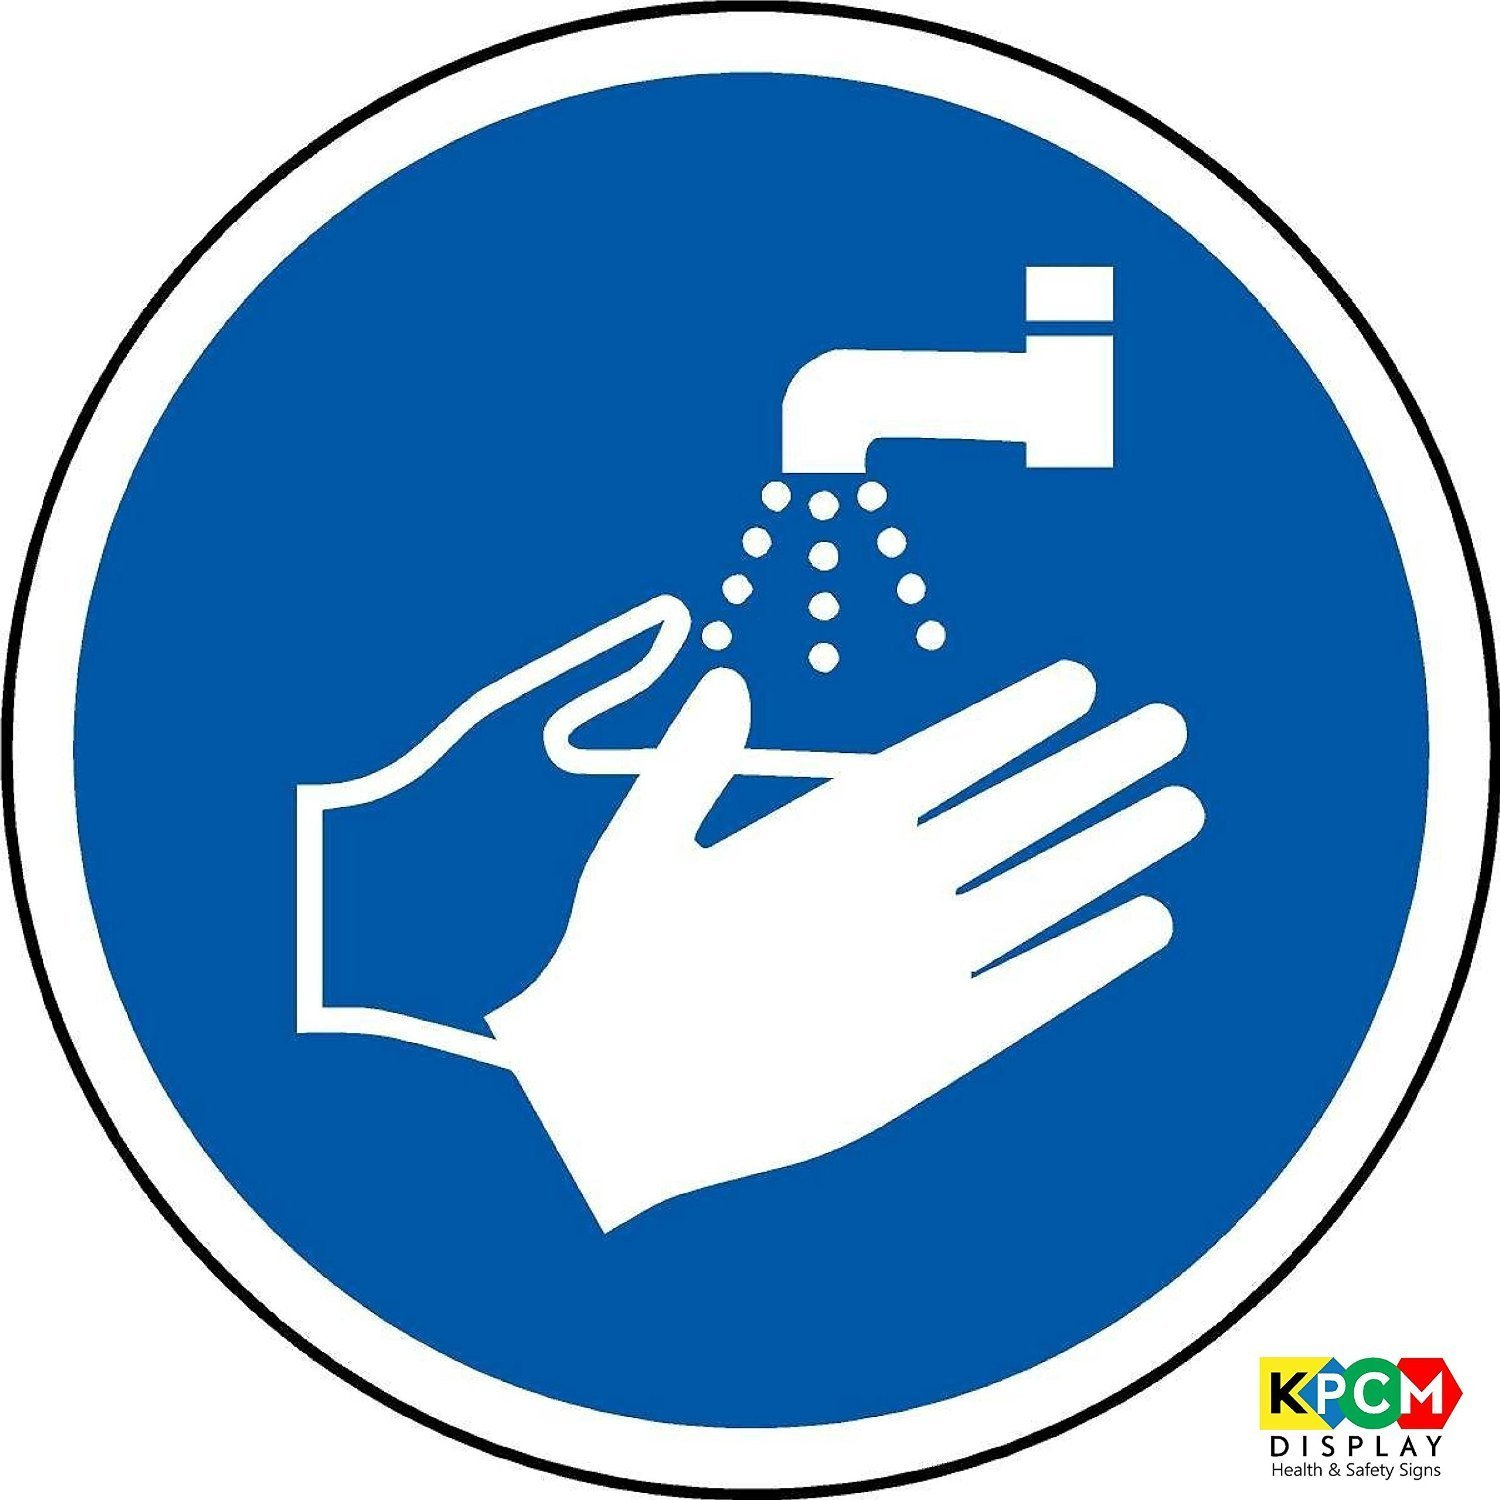 Iso safety sign international wash your hands symbol self iso safety sign international wash your hands symbol self adhesive sticker 100mm diameter amazon industrial scientific biocorpaavc